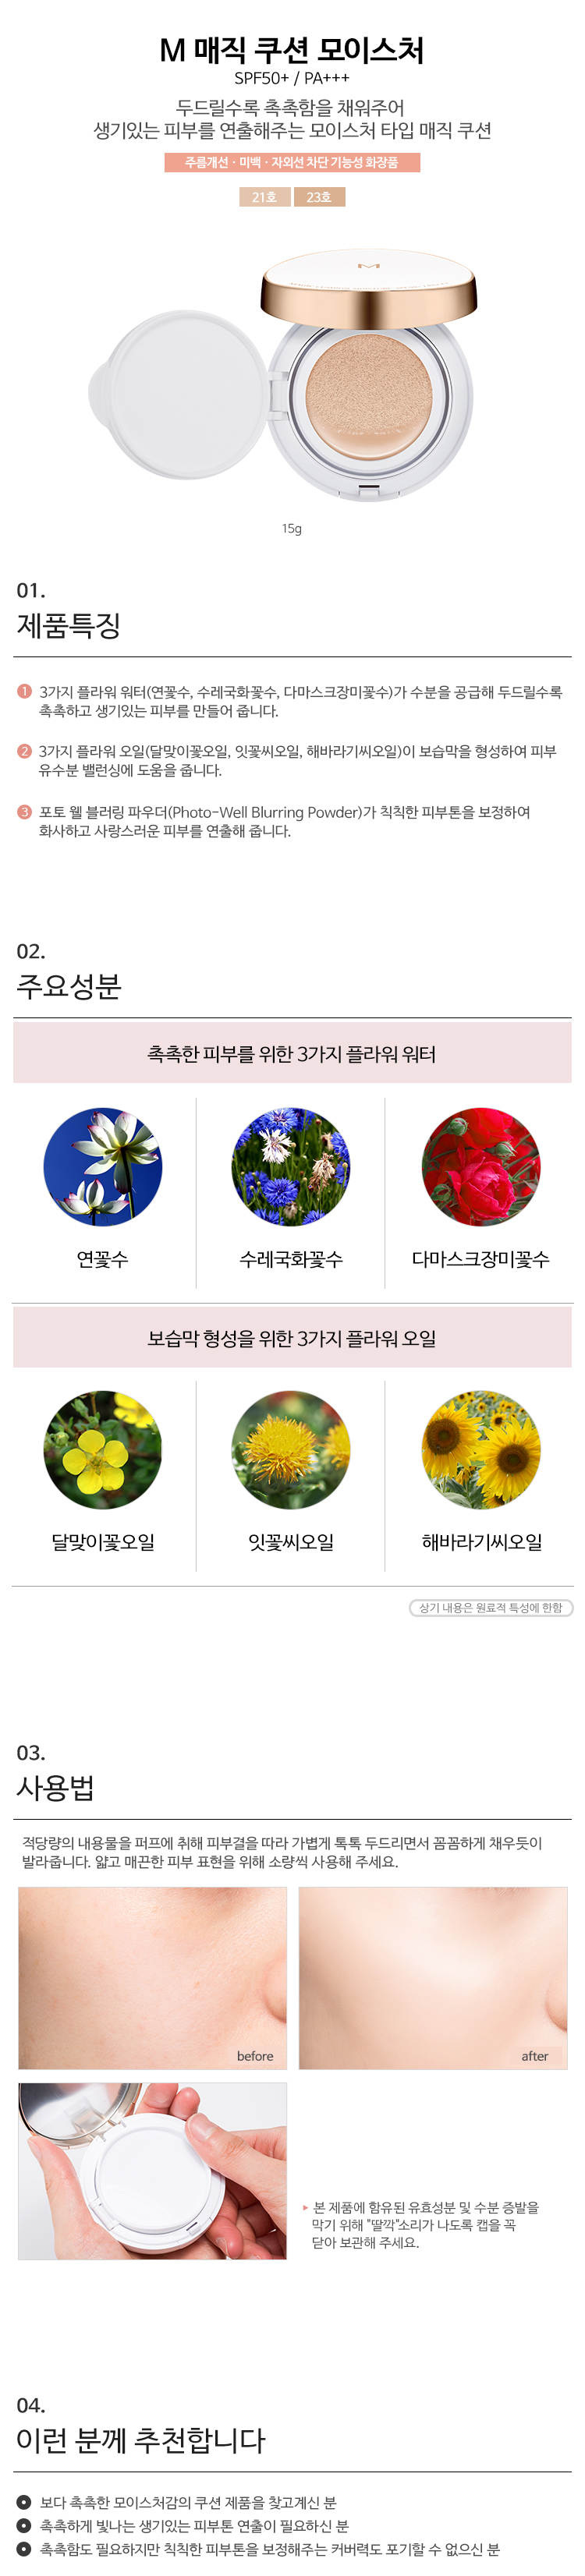 Missha korean website